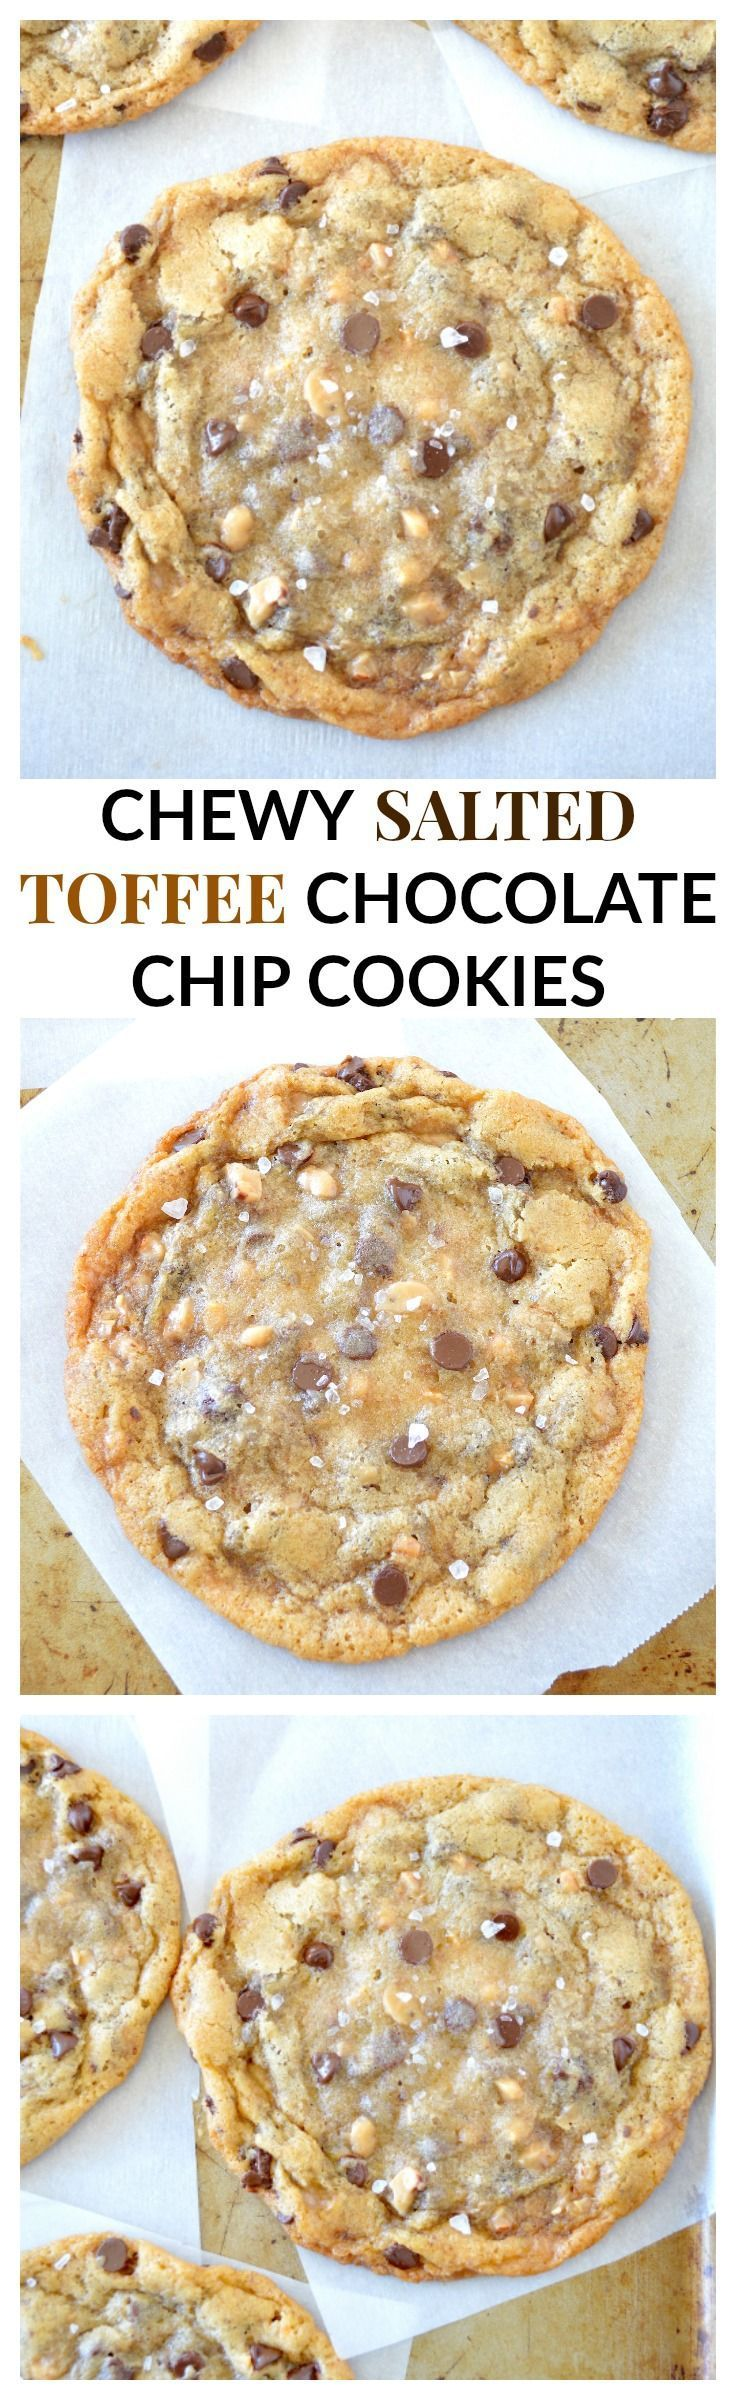 Now THAT'S a cookie! Homemade Chewy Salted Toffee Chocolate Chip Cookies! So delicious and perfect for your next family movie night or Fall baking day!